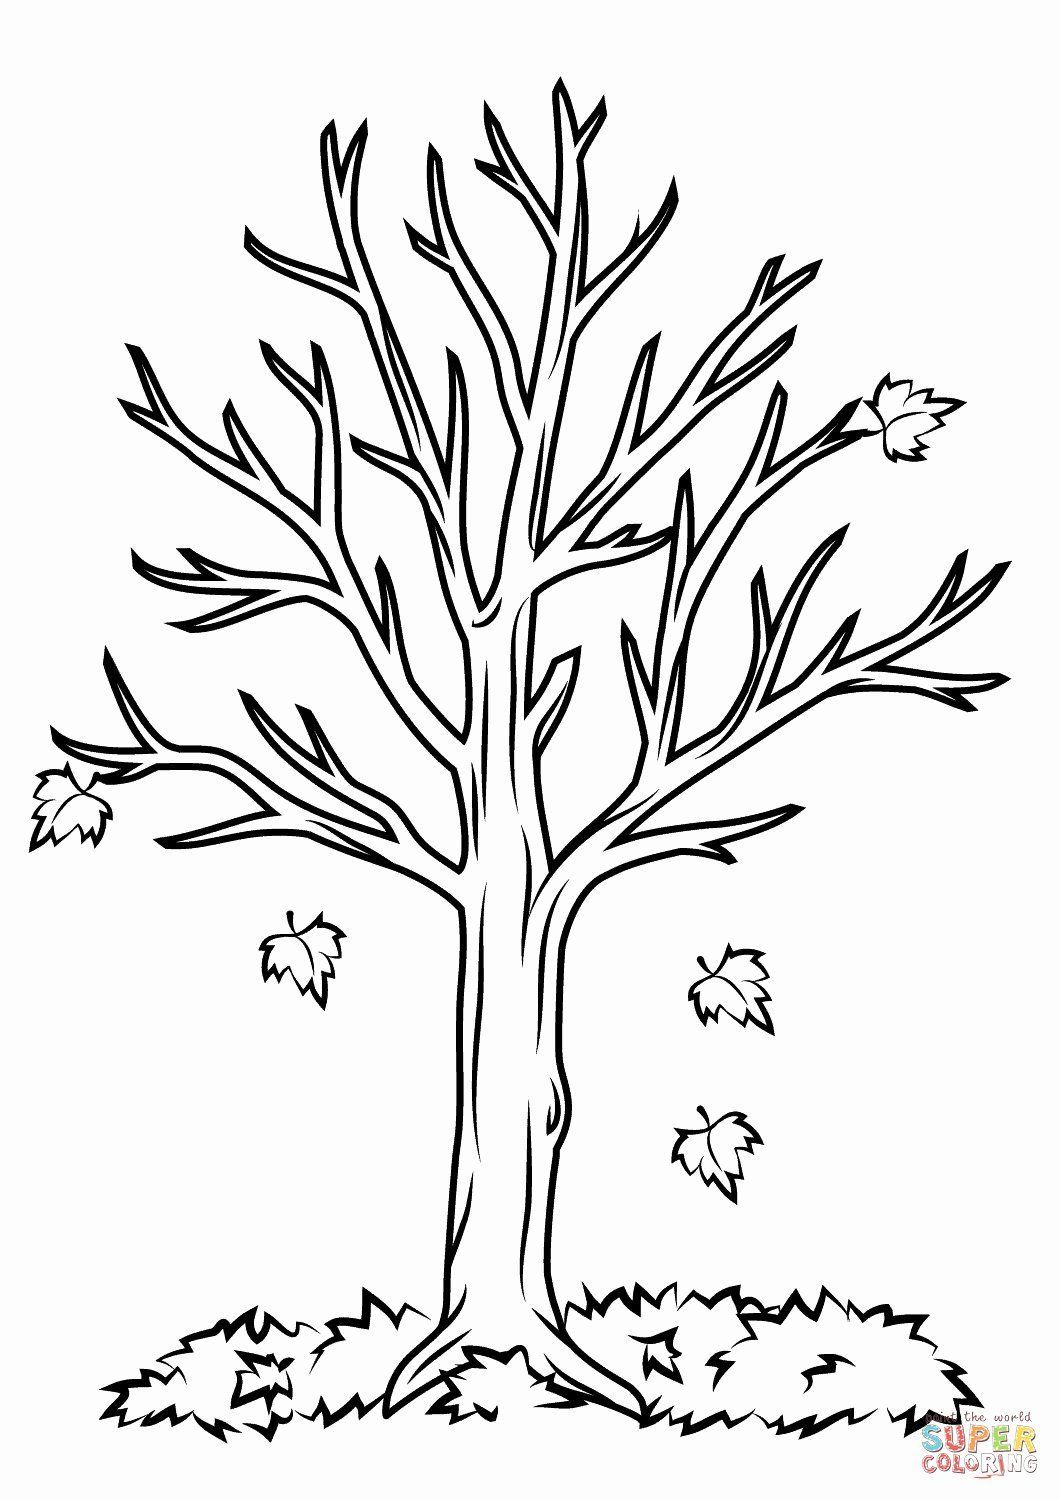 Tree Without Leaves Coloring Page Elegant Coloring Books Fall